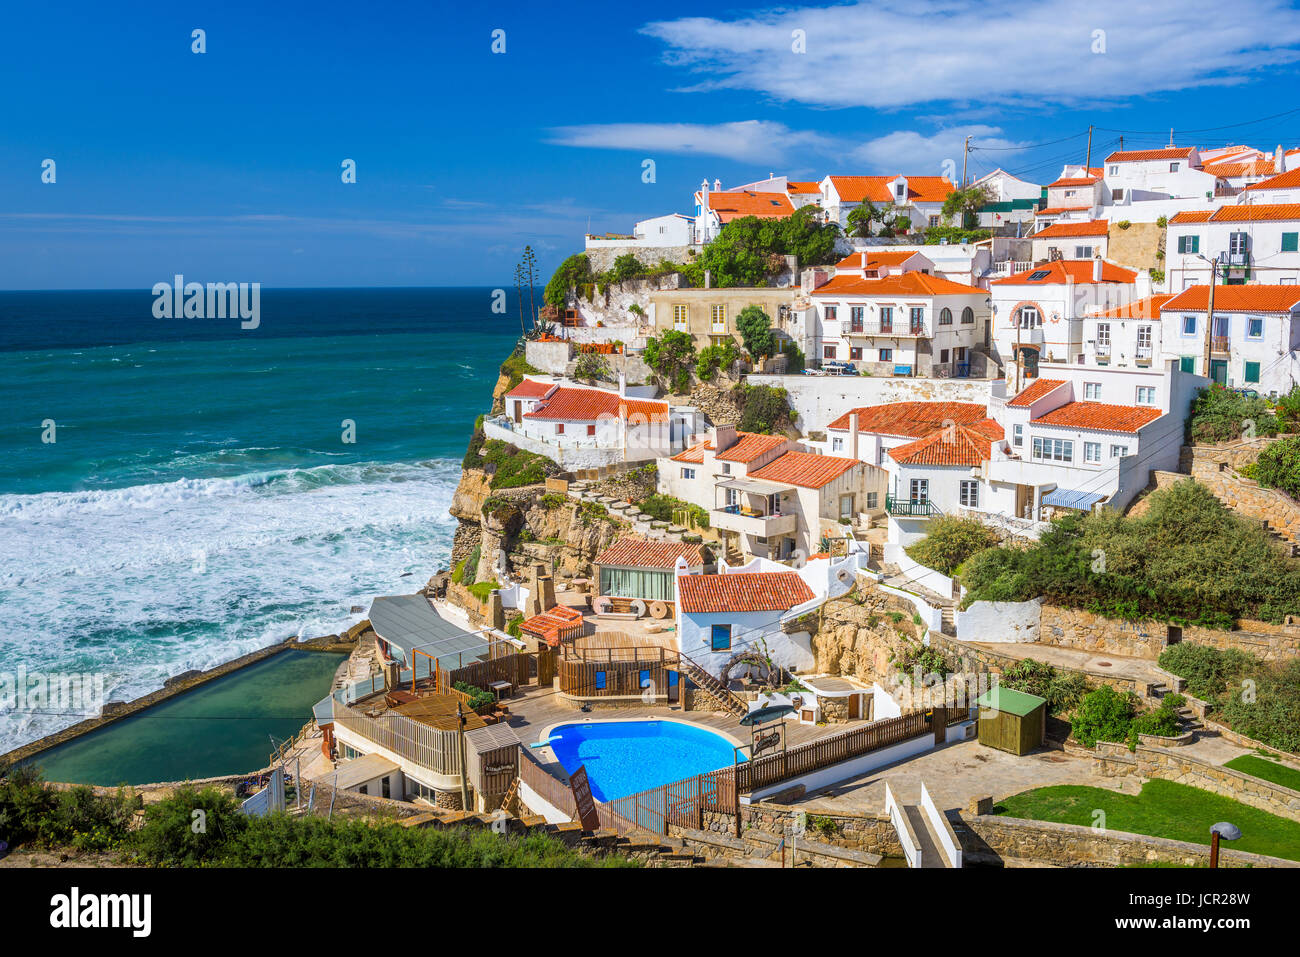 Azenhas Do Mar, Portugal Küstenstadt. Stockbild